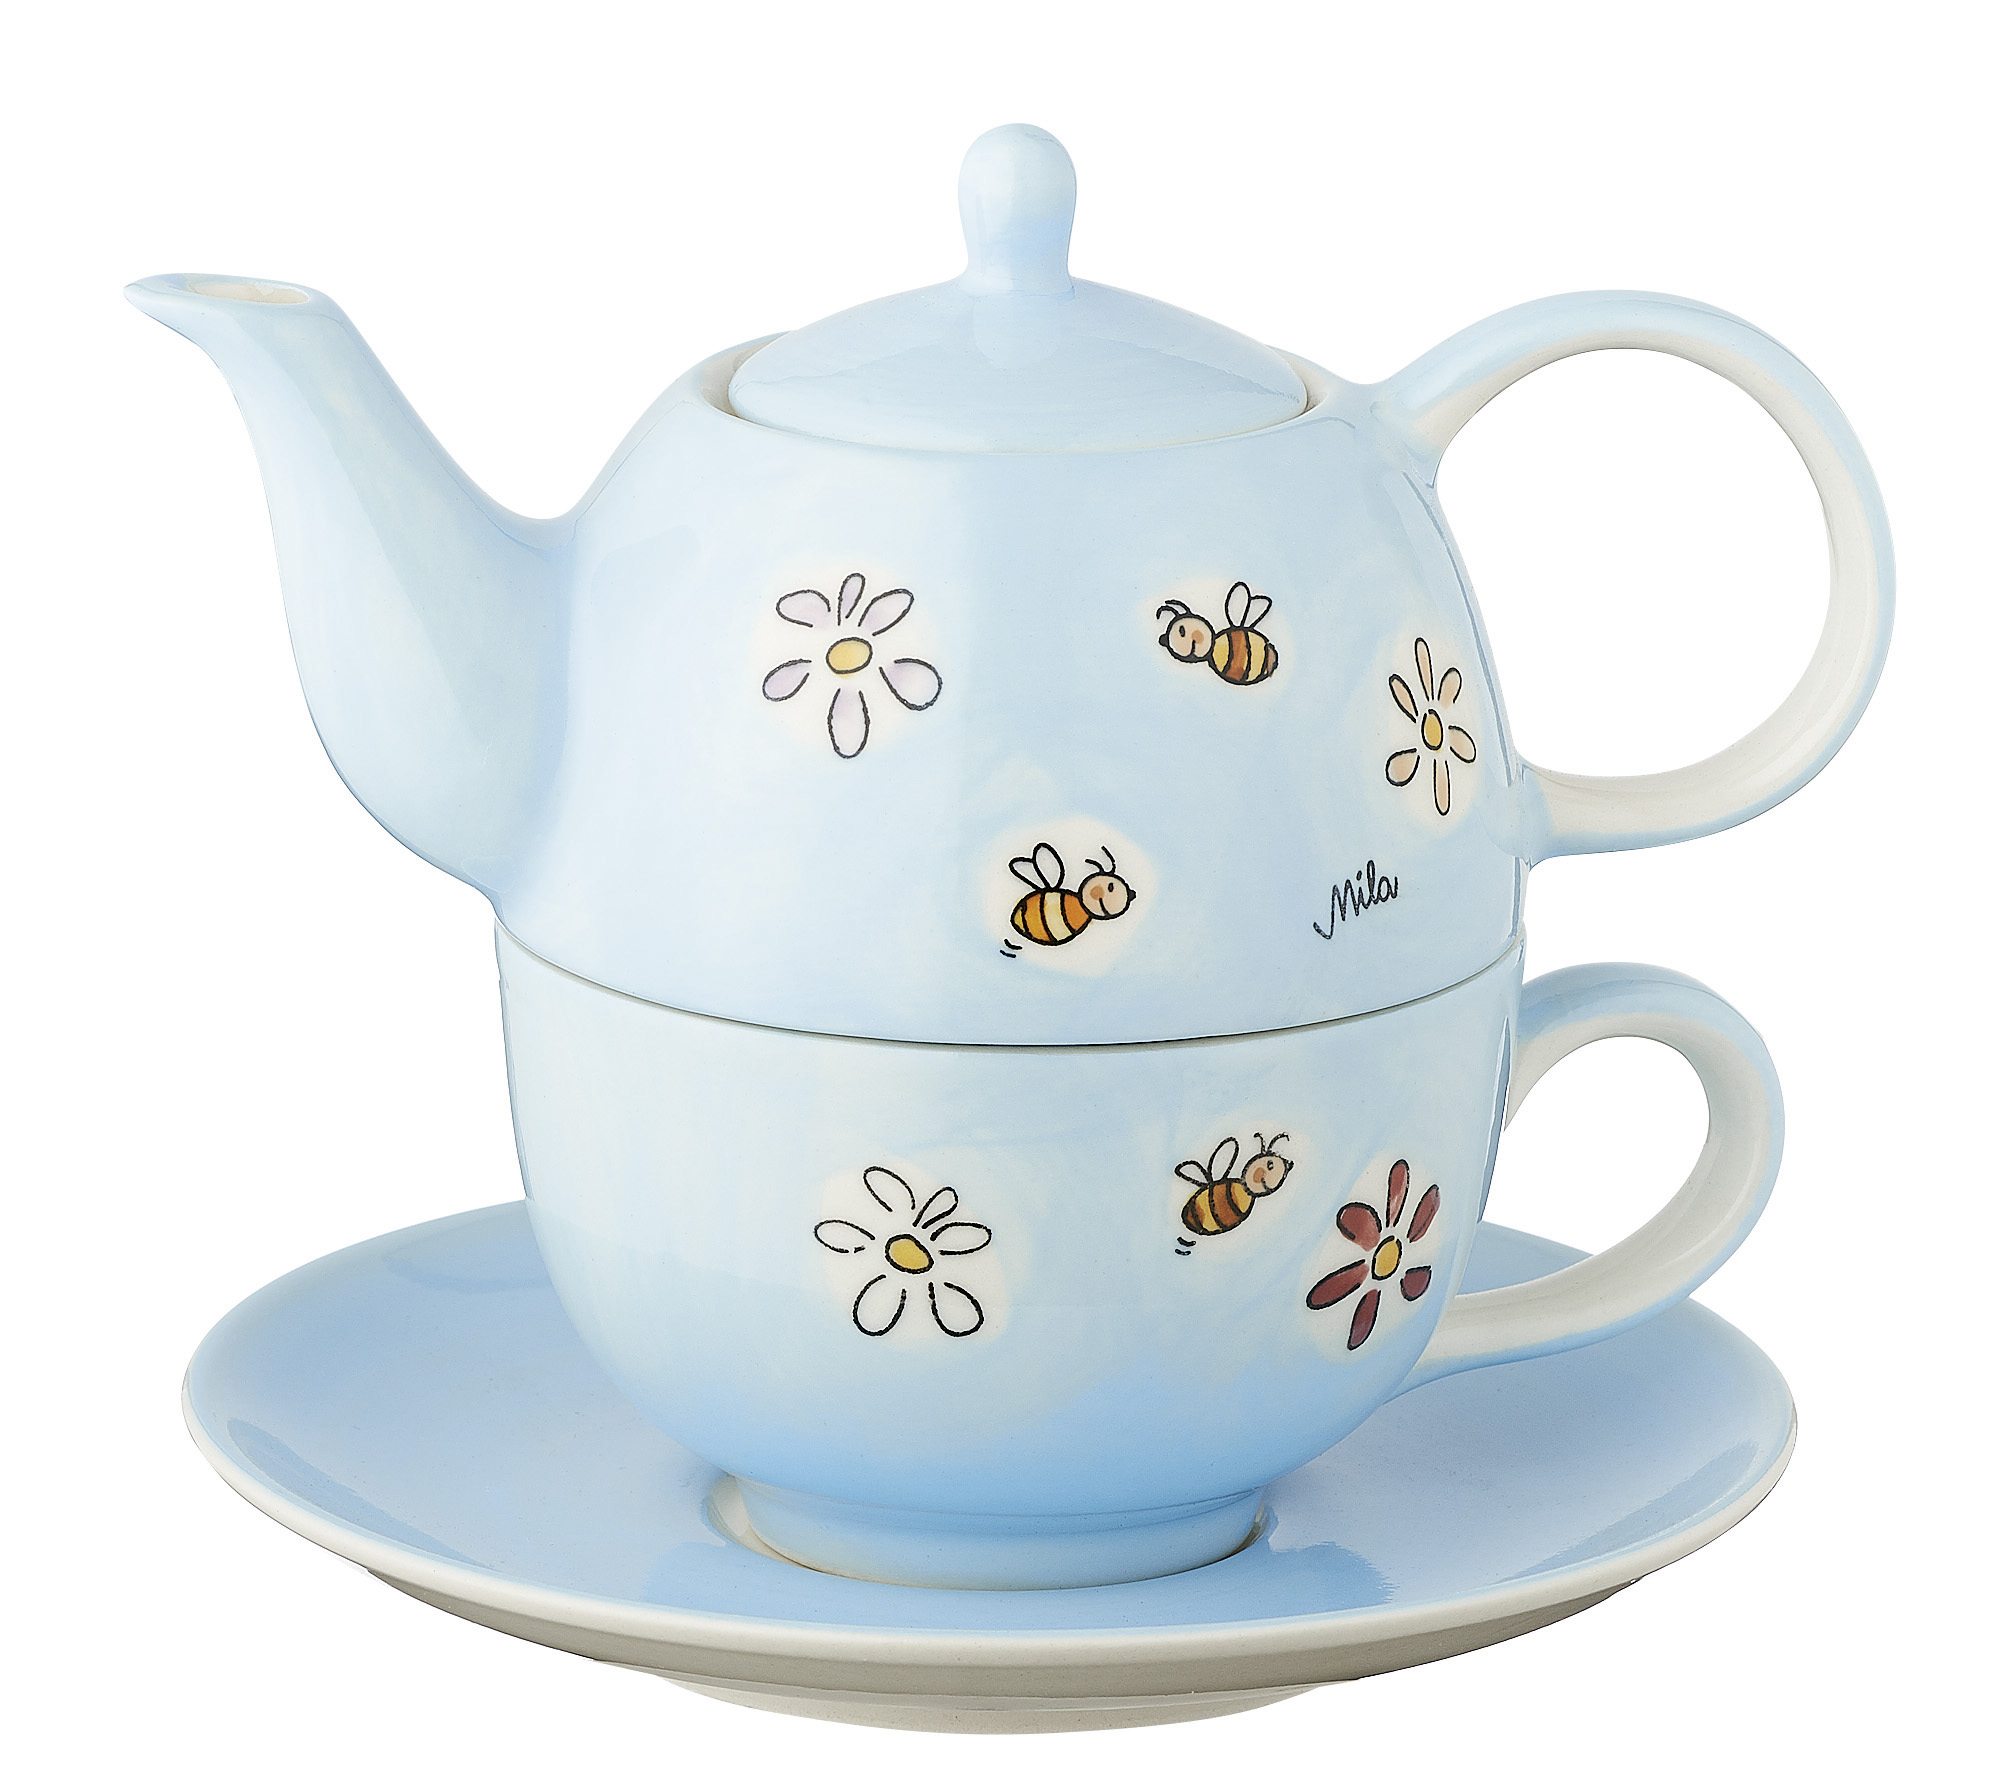 Tea for one - Honigbienen